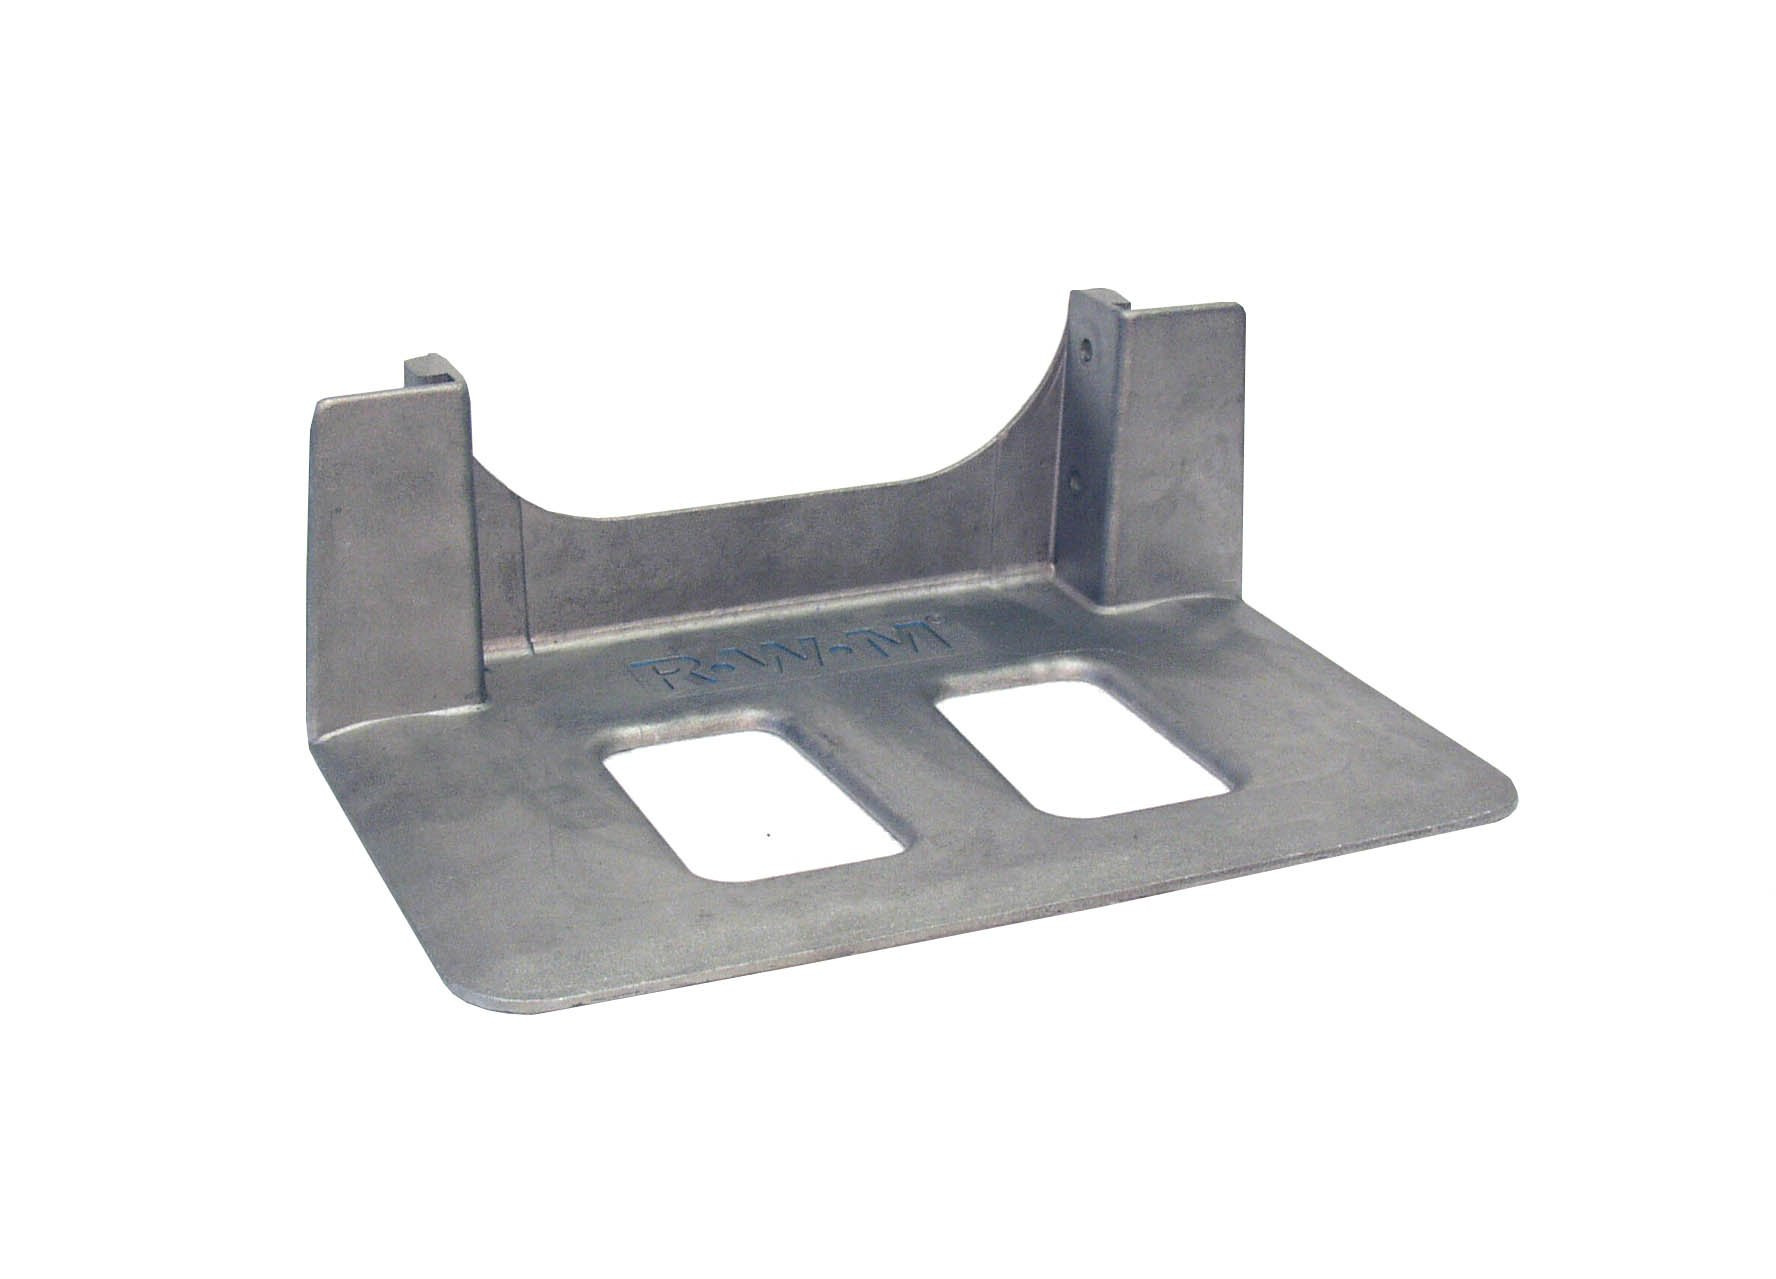 RWM Casters Small Cast Aluminum Hand Truck Nose Plate with Recessed Heel, 14'' Plate Length, 7-1/2'' Plate Width